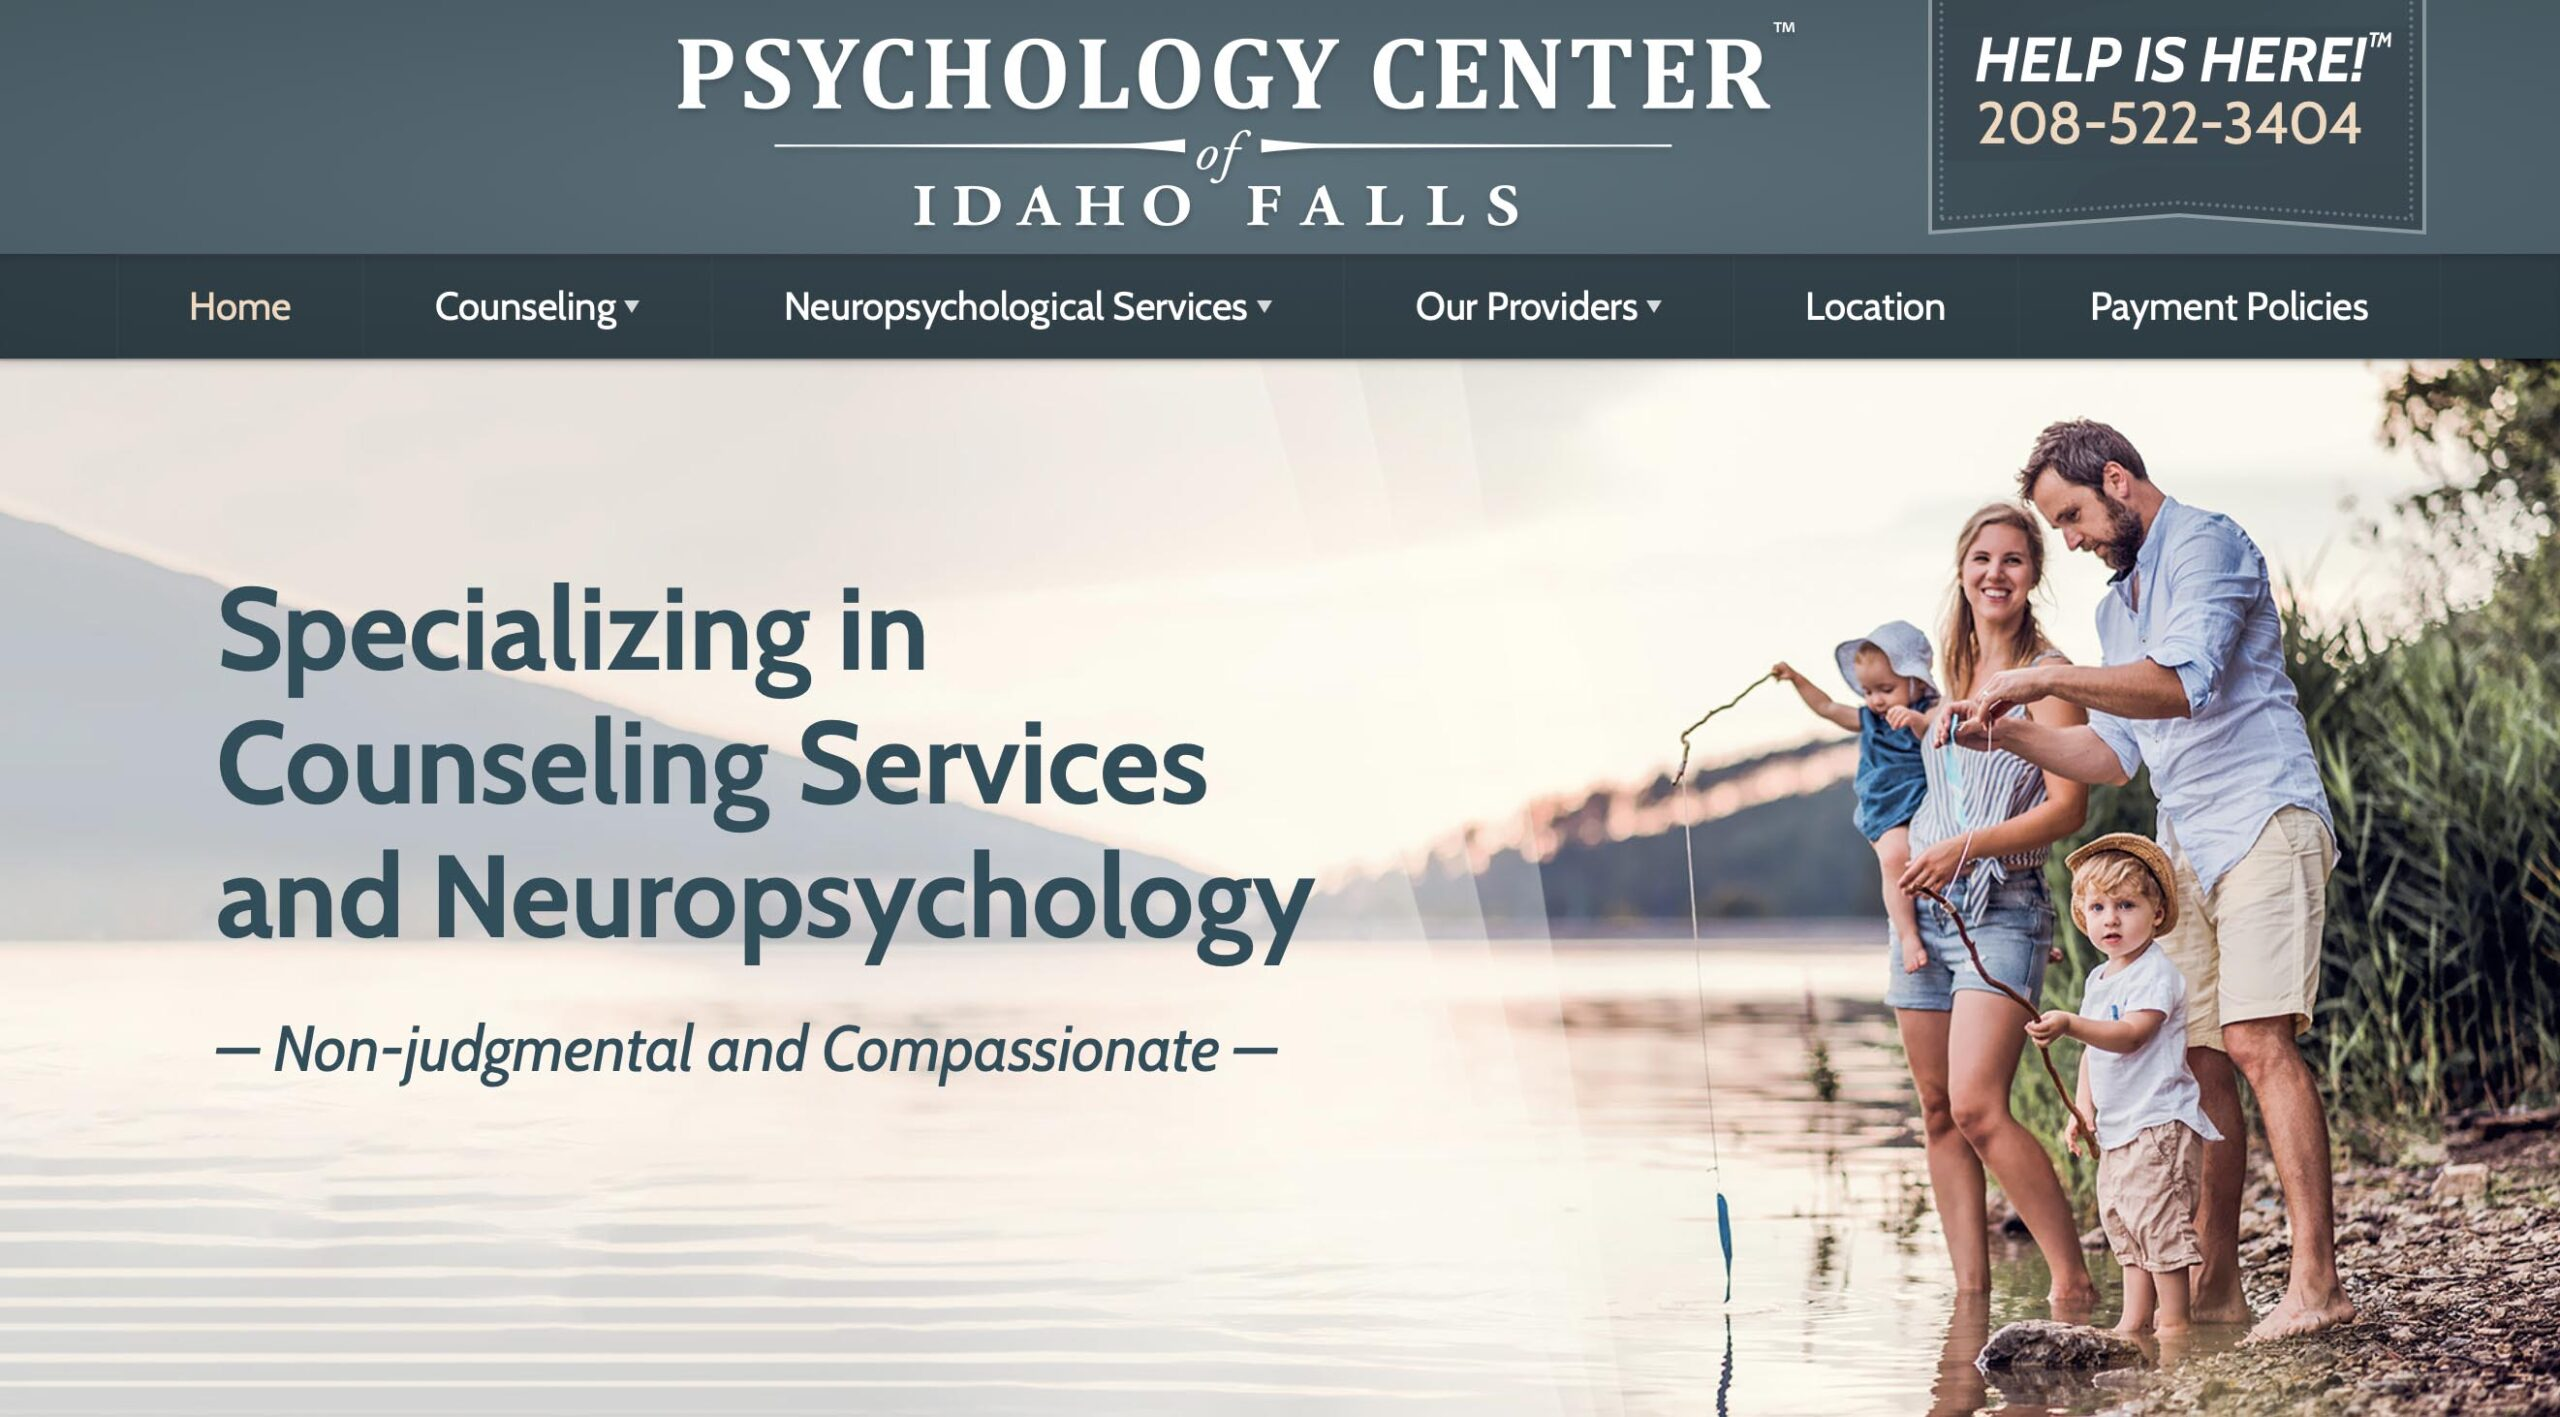 Marketing consultant - website developer project for Phychology Center of Idaho Falls